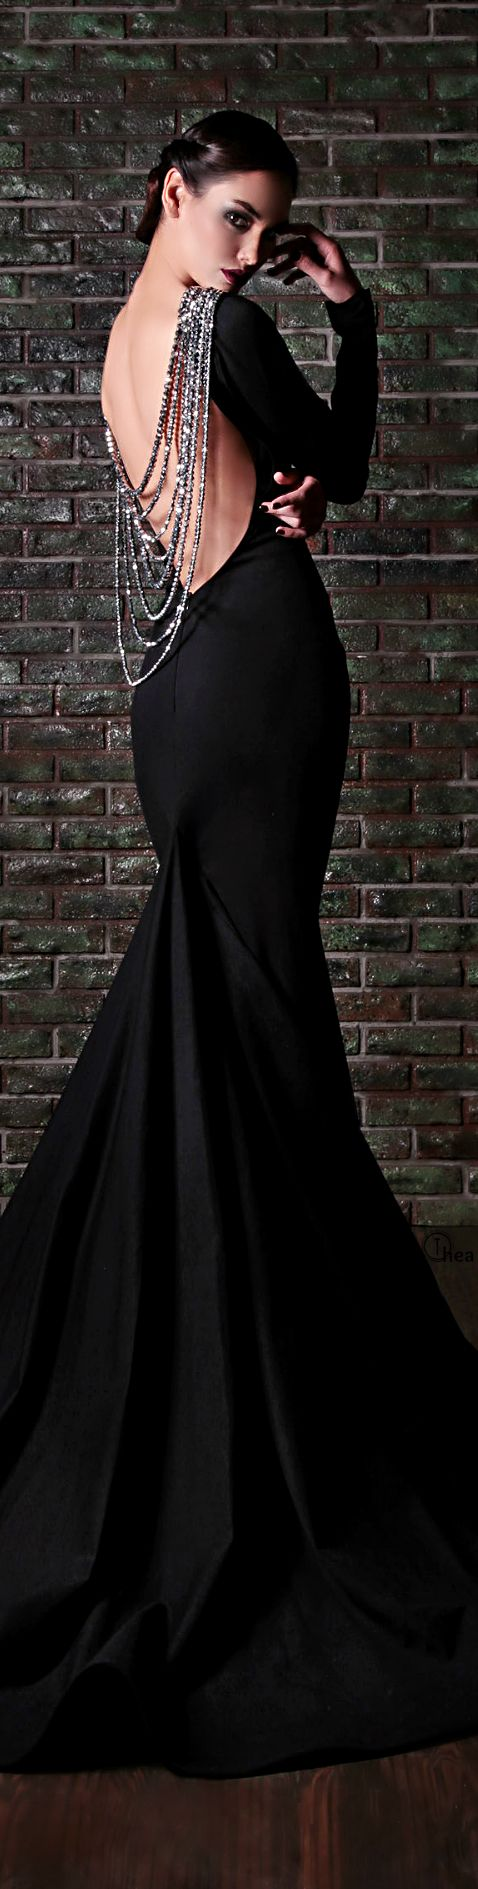 13 Most Beautiful Long Black Dresses From RAMI KADI, click to see all–I'll wear this one when you're supe